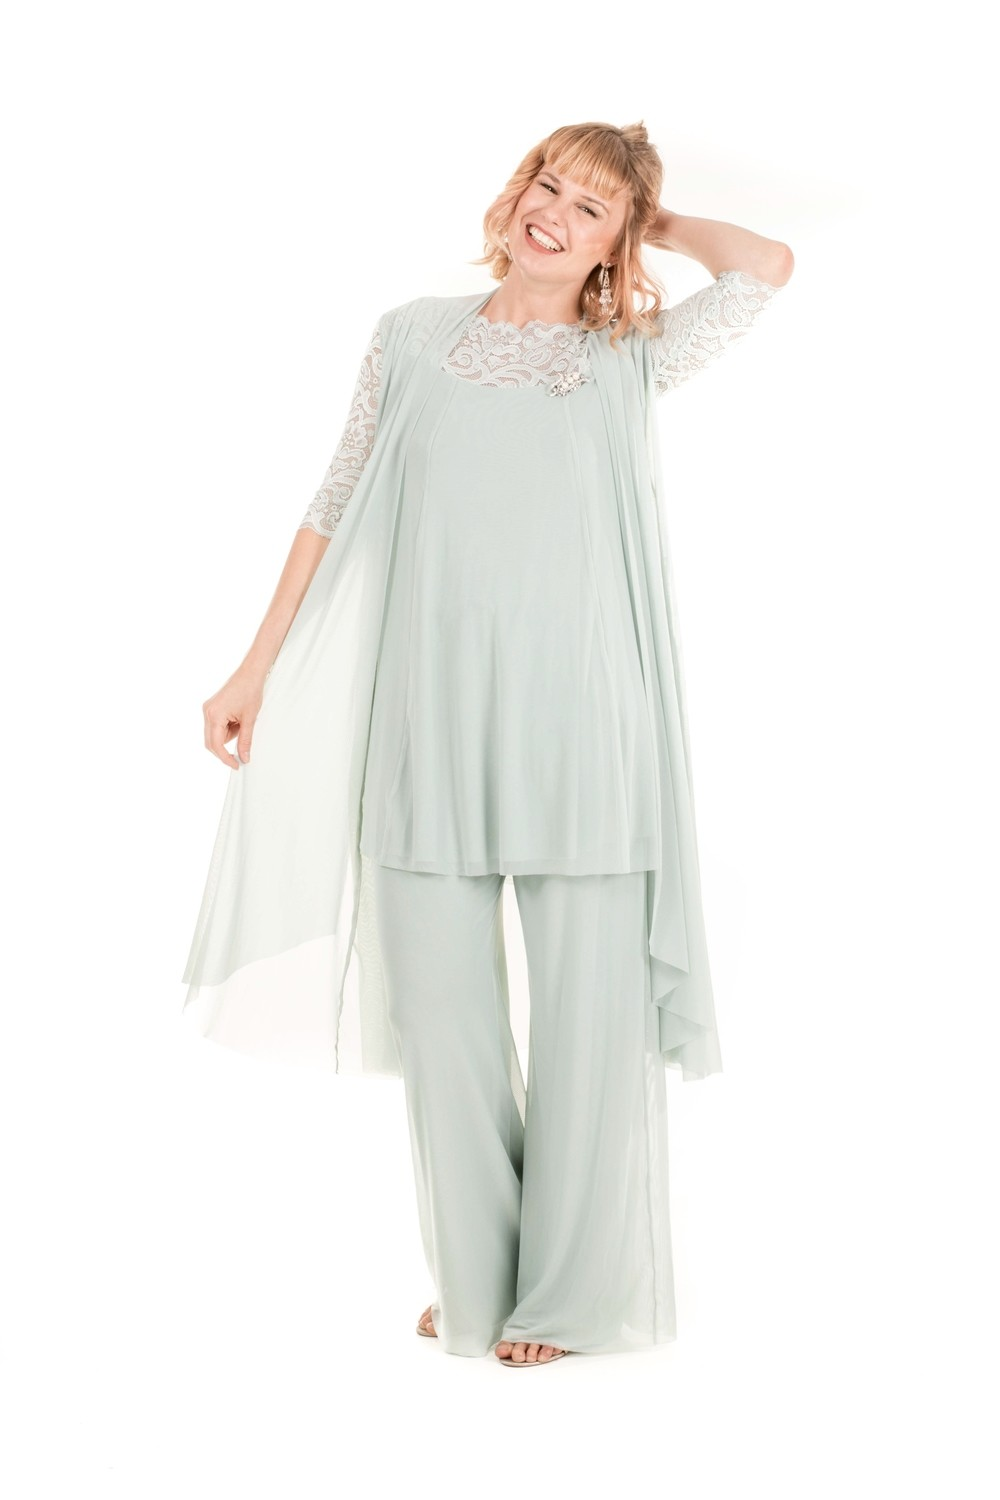 Anne Mother of the Bride Pant Suit